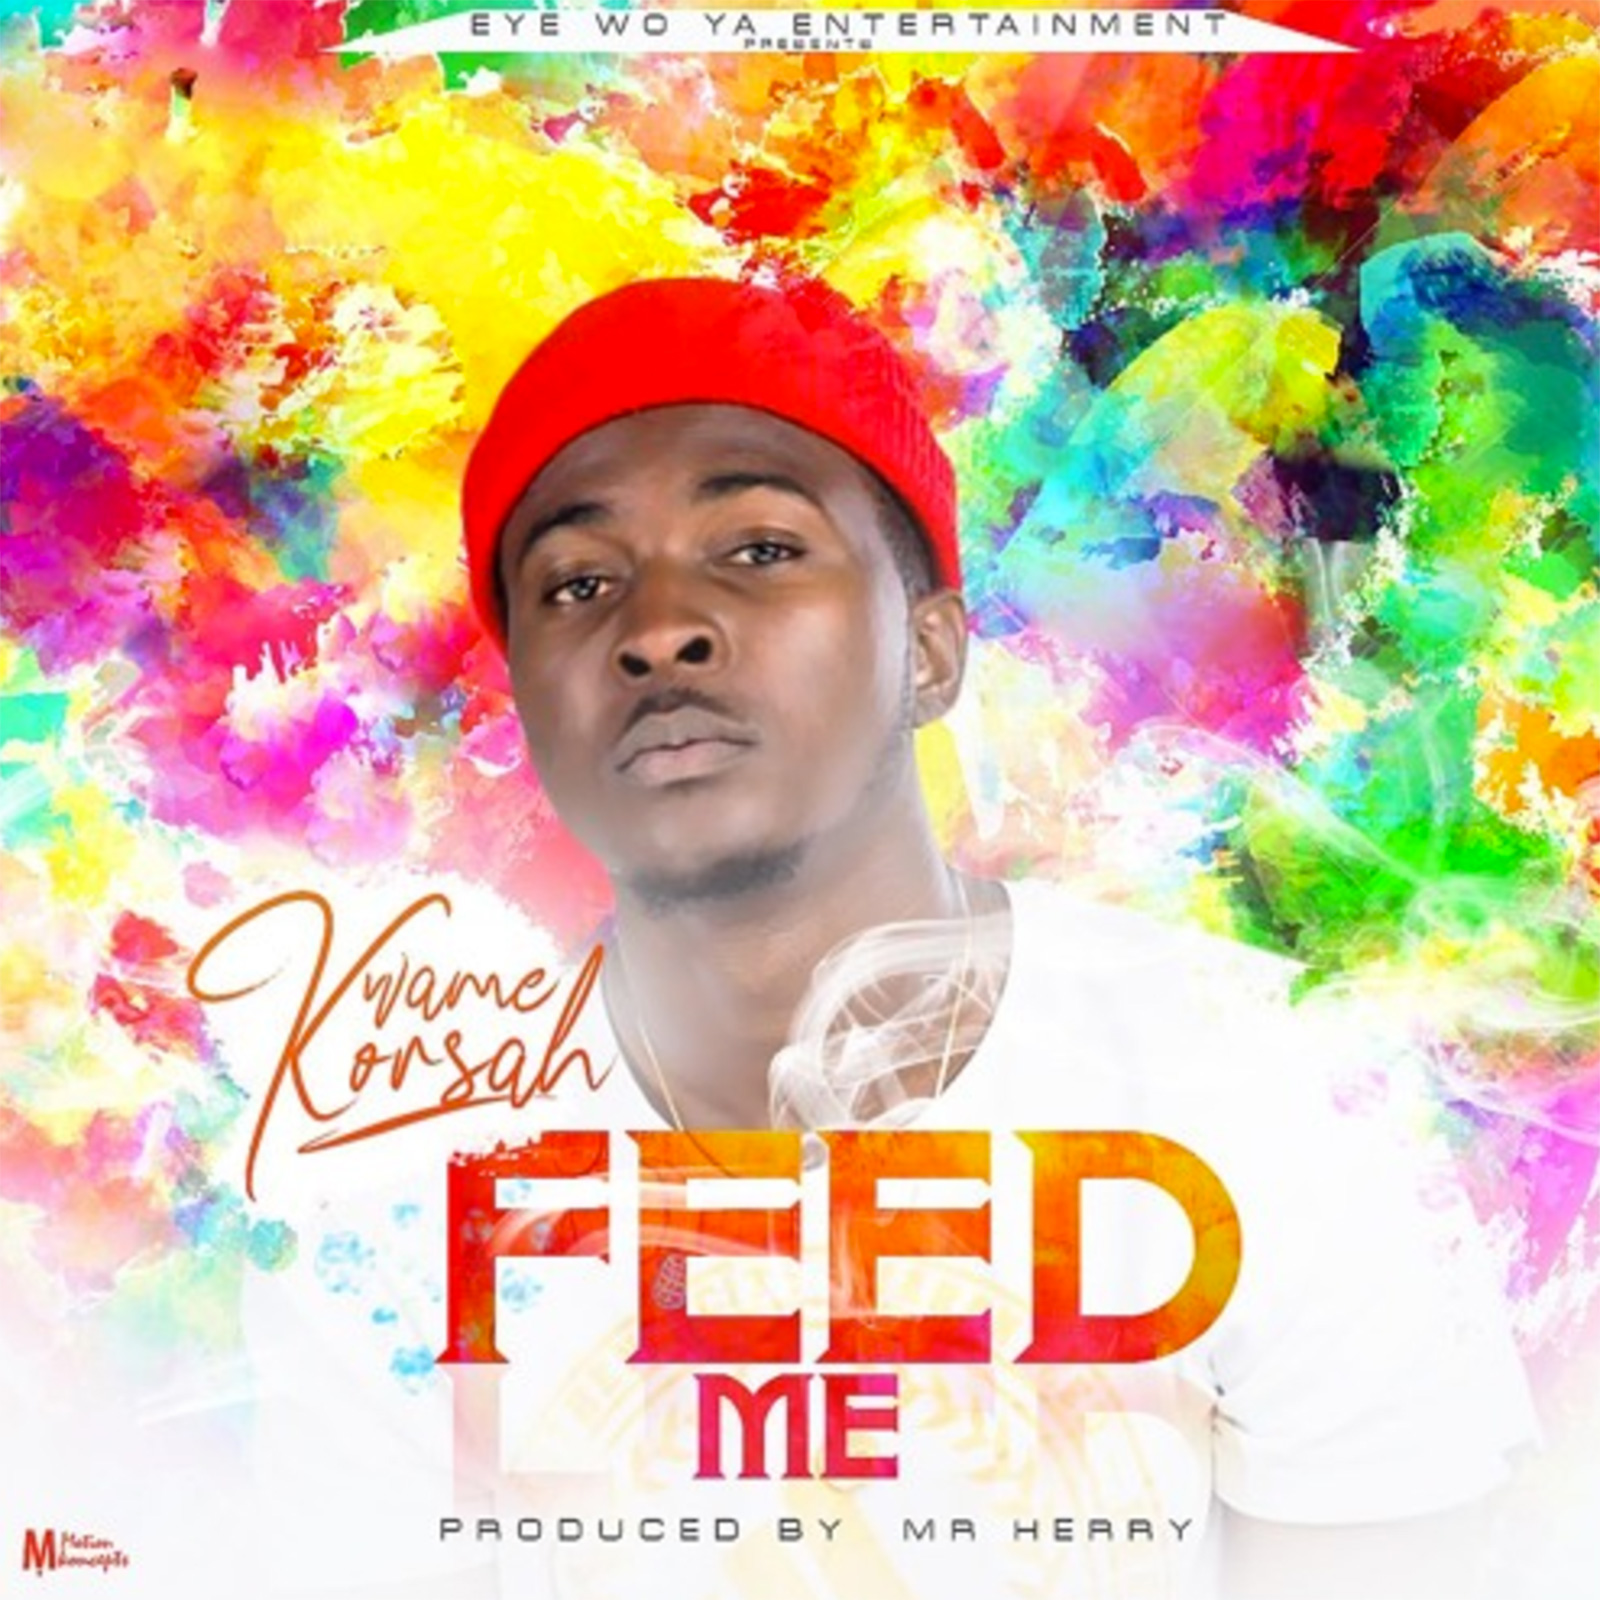 Feed Me by Kwame Korsah